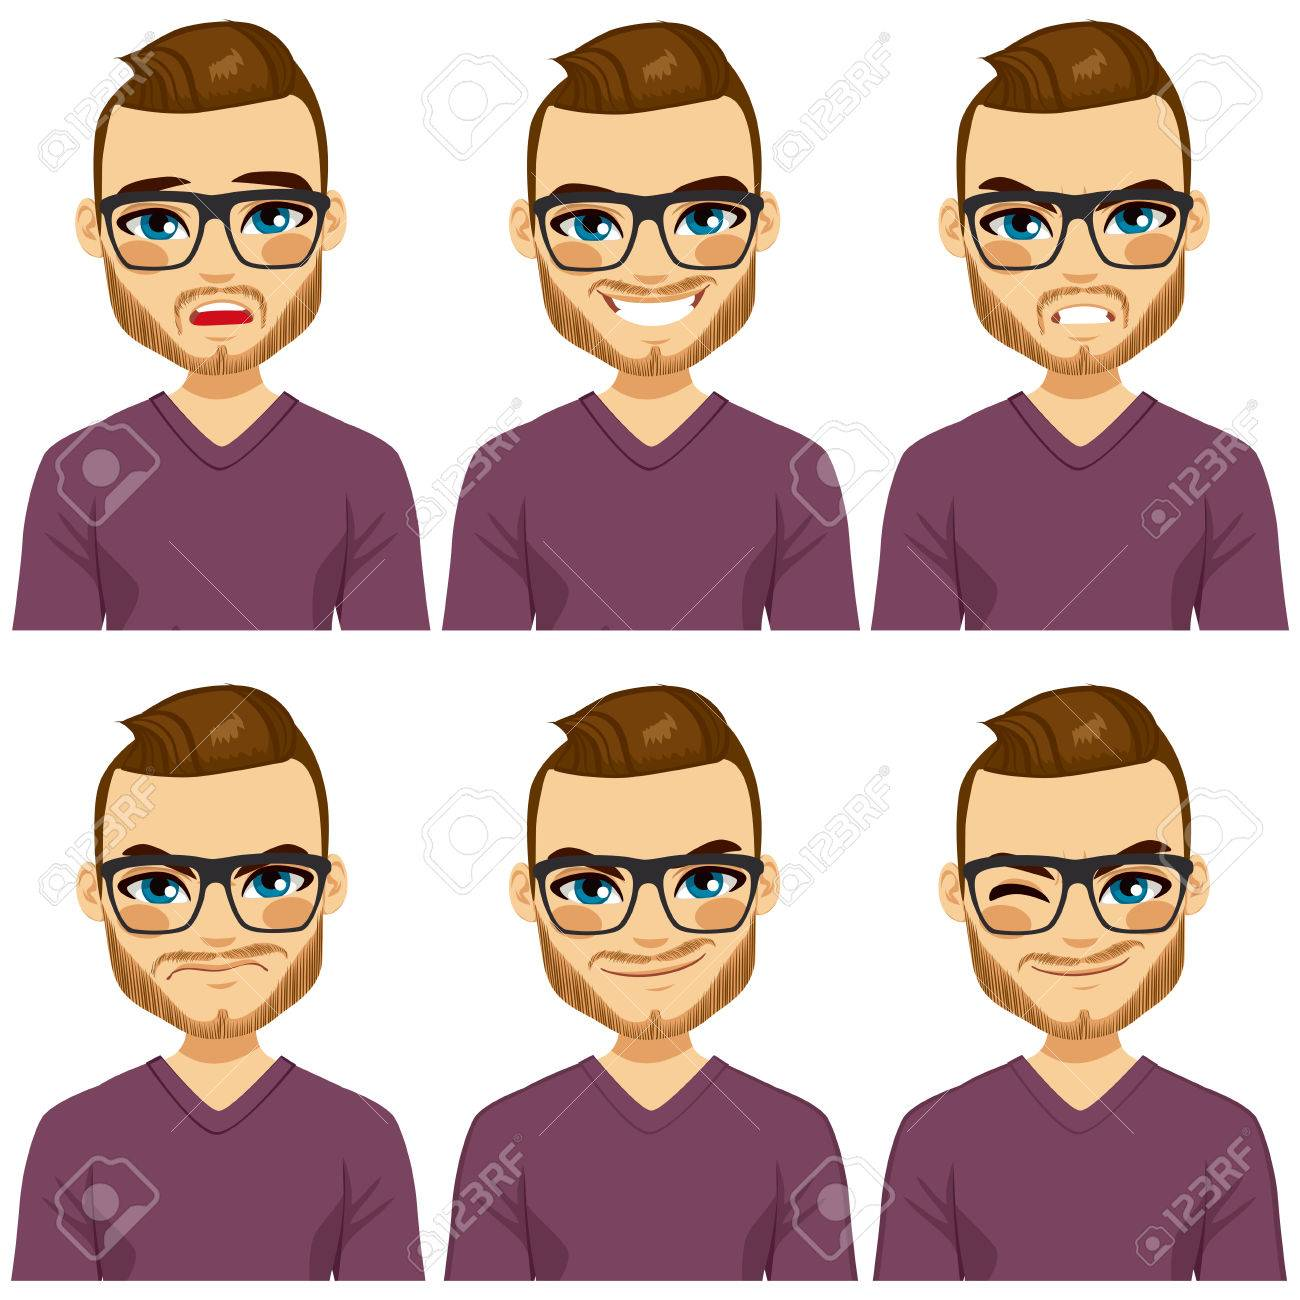 Attractive brown haired young hipster man with glasses on six different face expressions collection - 38677432